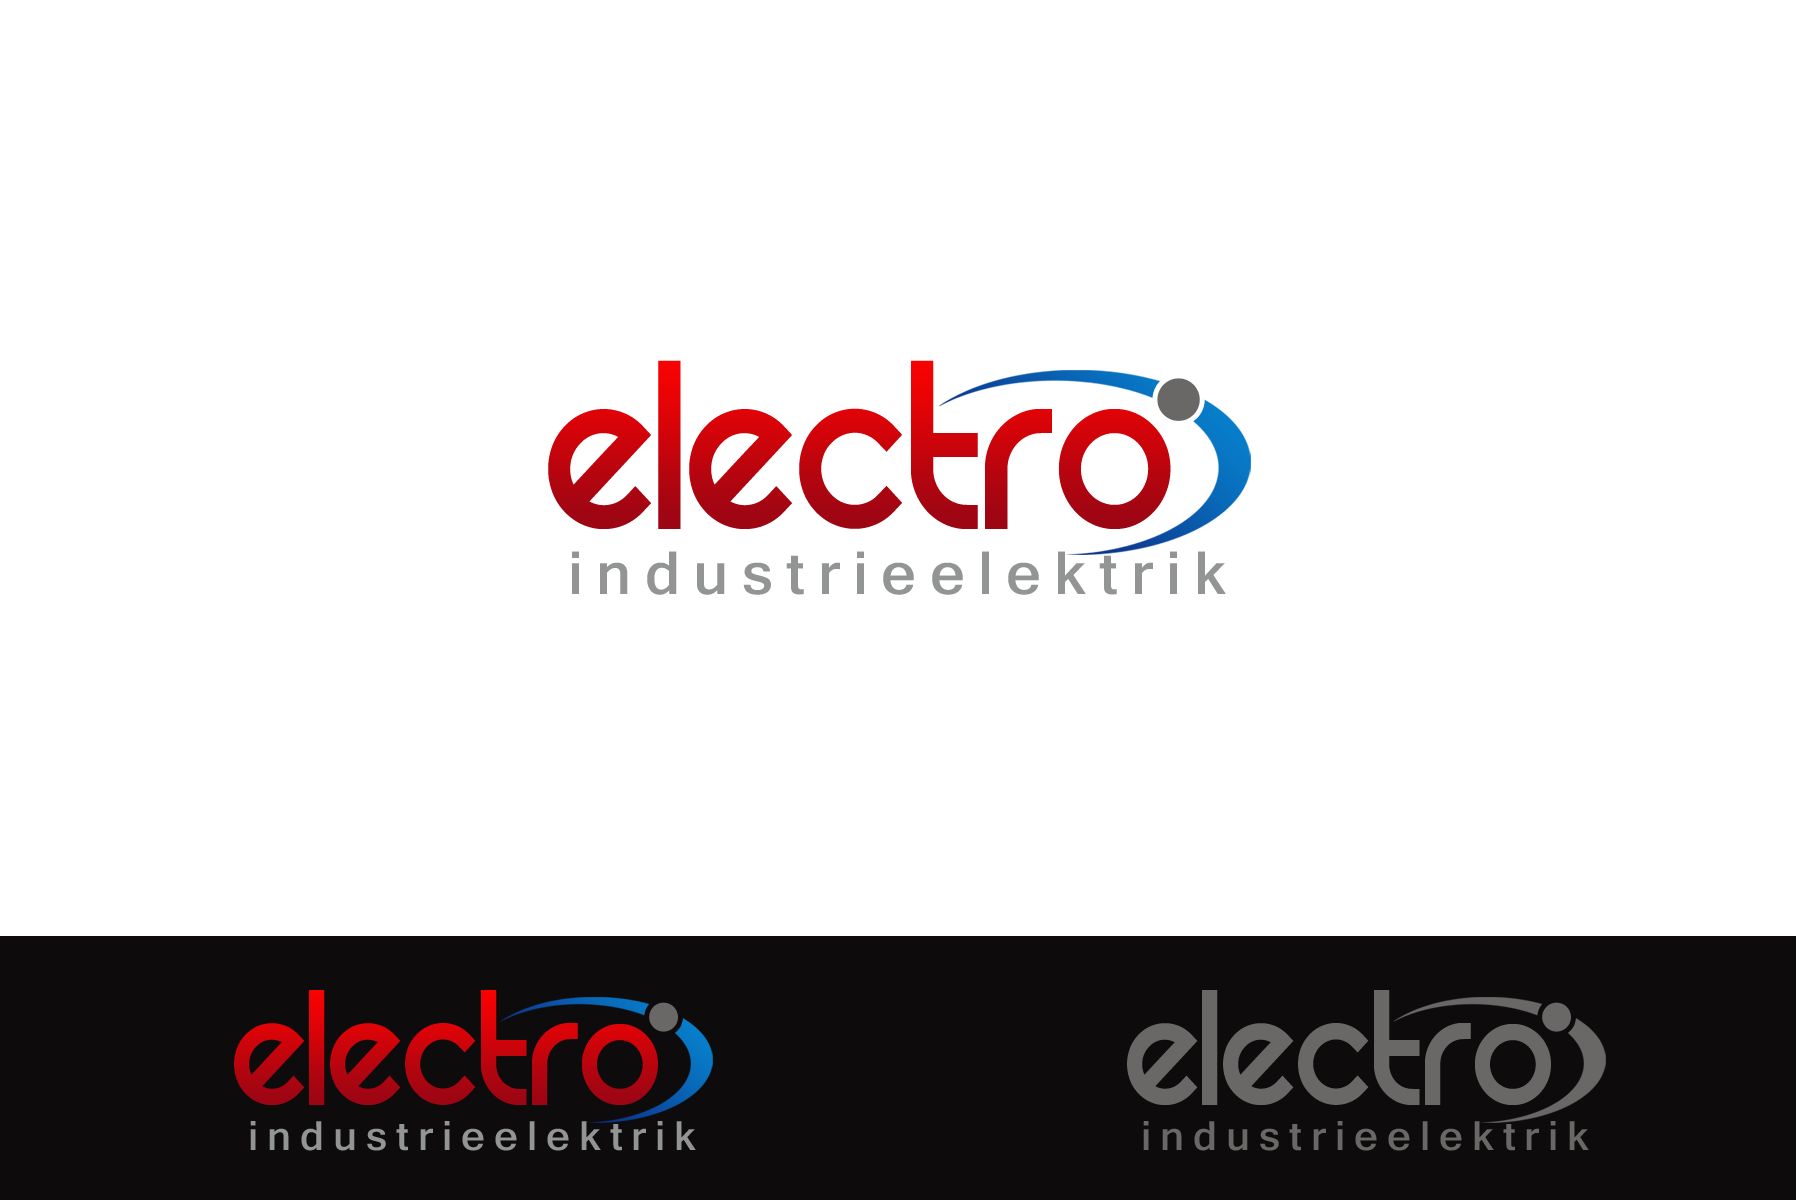 Logo Design by Golden_Hand - Entry No. 60 in the Logo Design Contest Unique Logo Design Wanted for Electro Industrieelektrik.